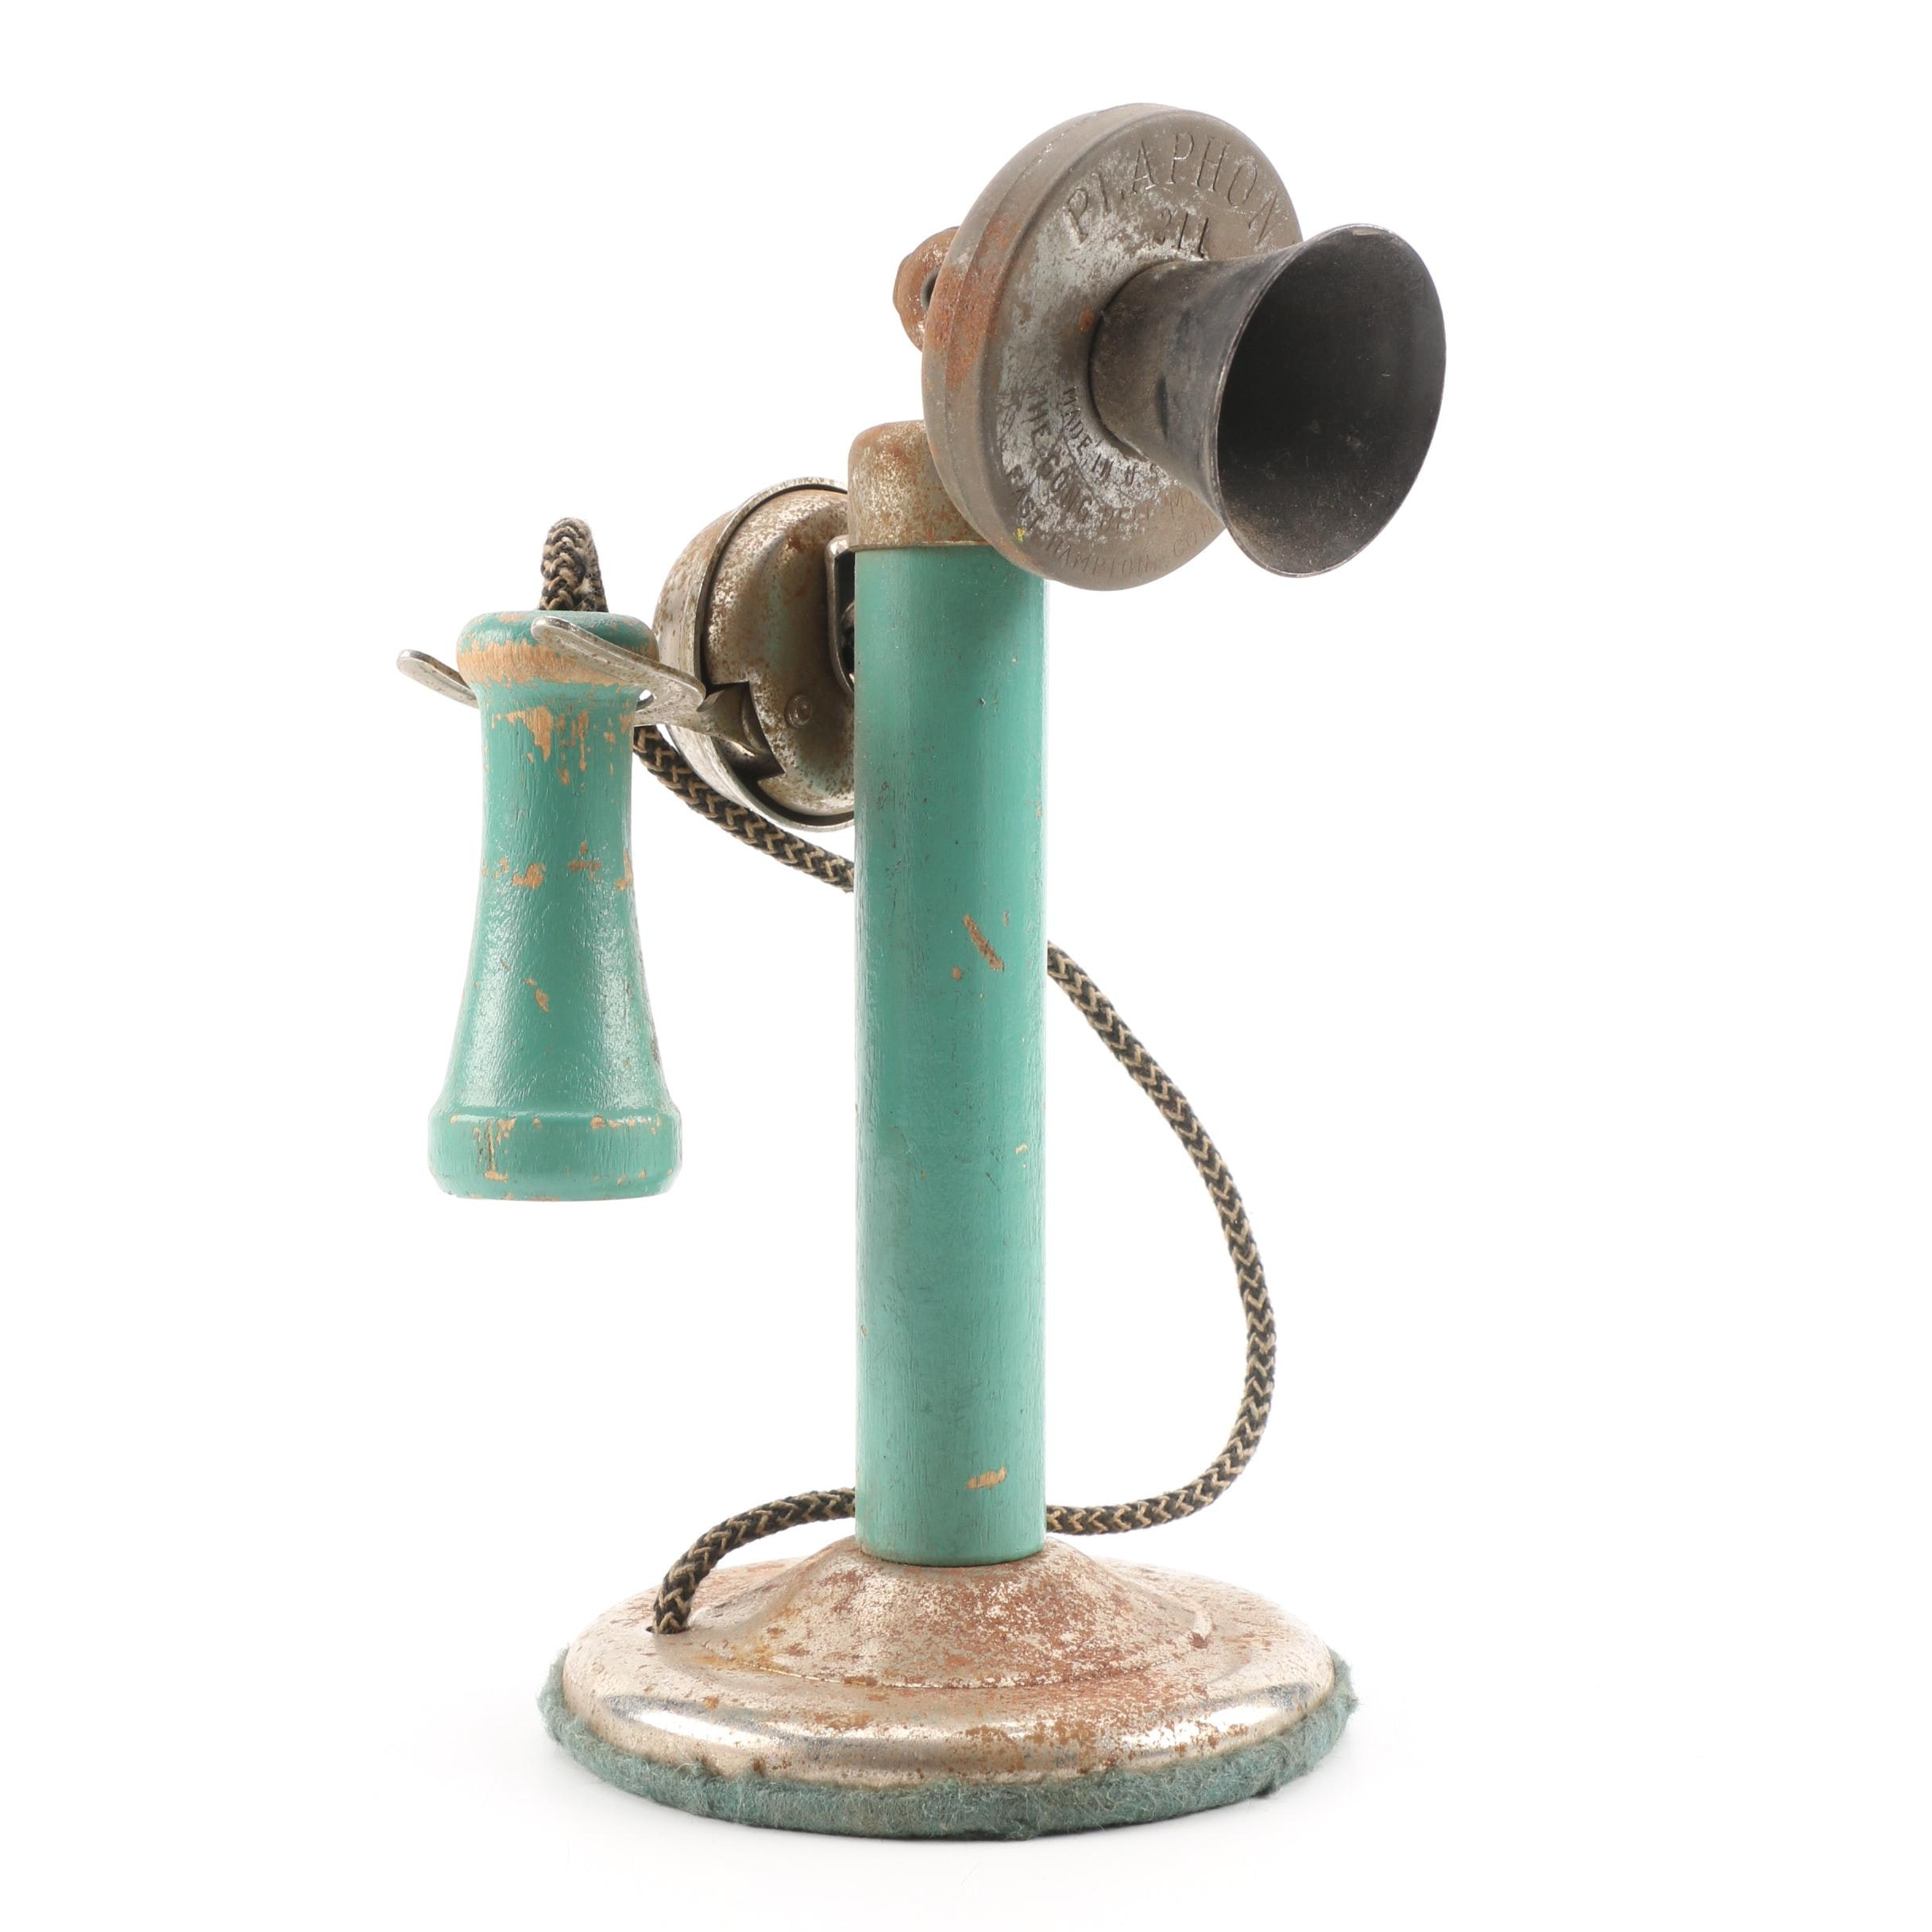 1920s Toy Telephone by The Gong Bell